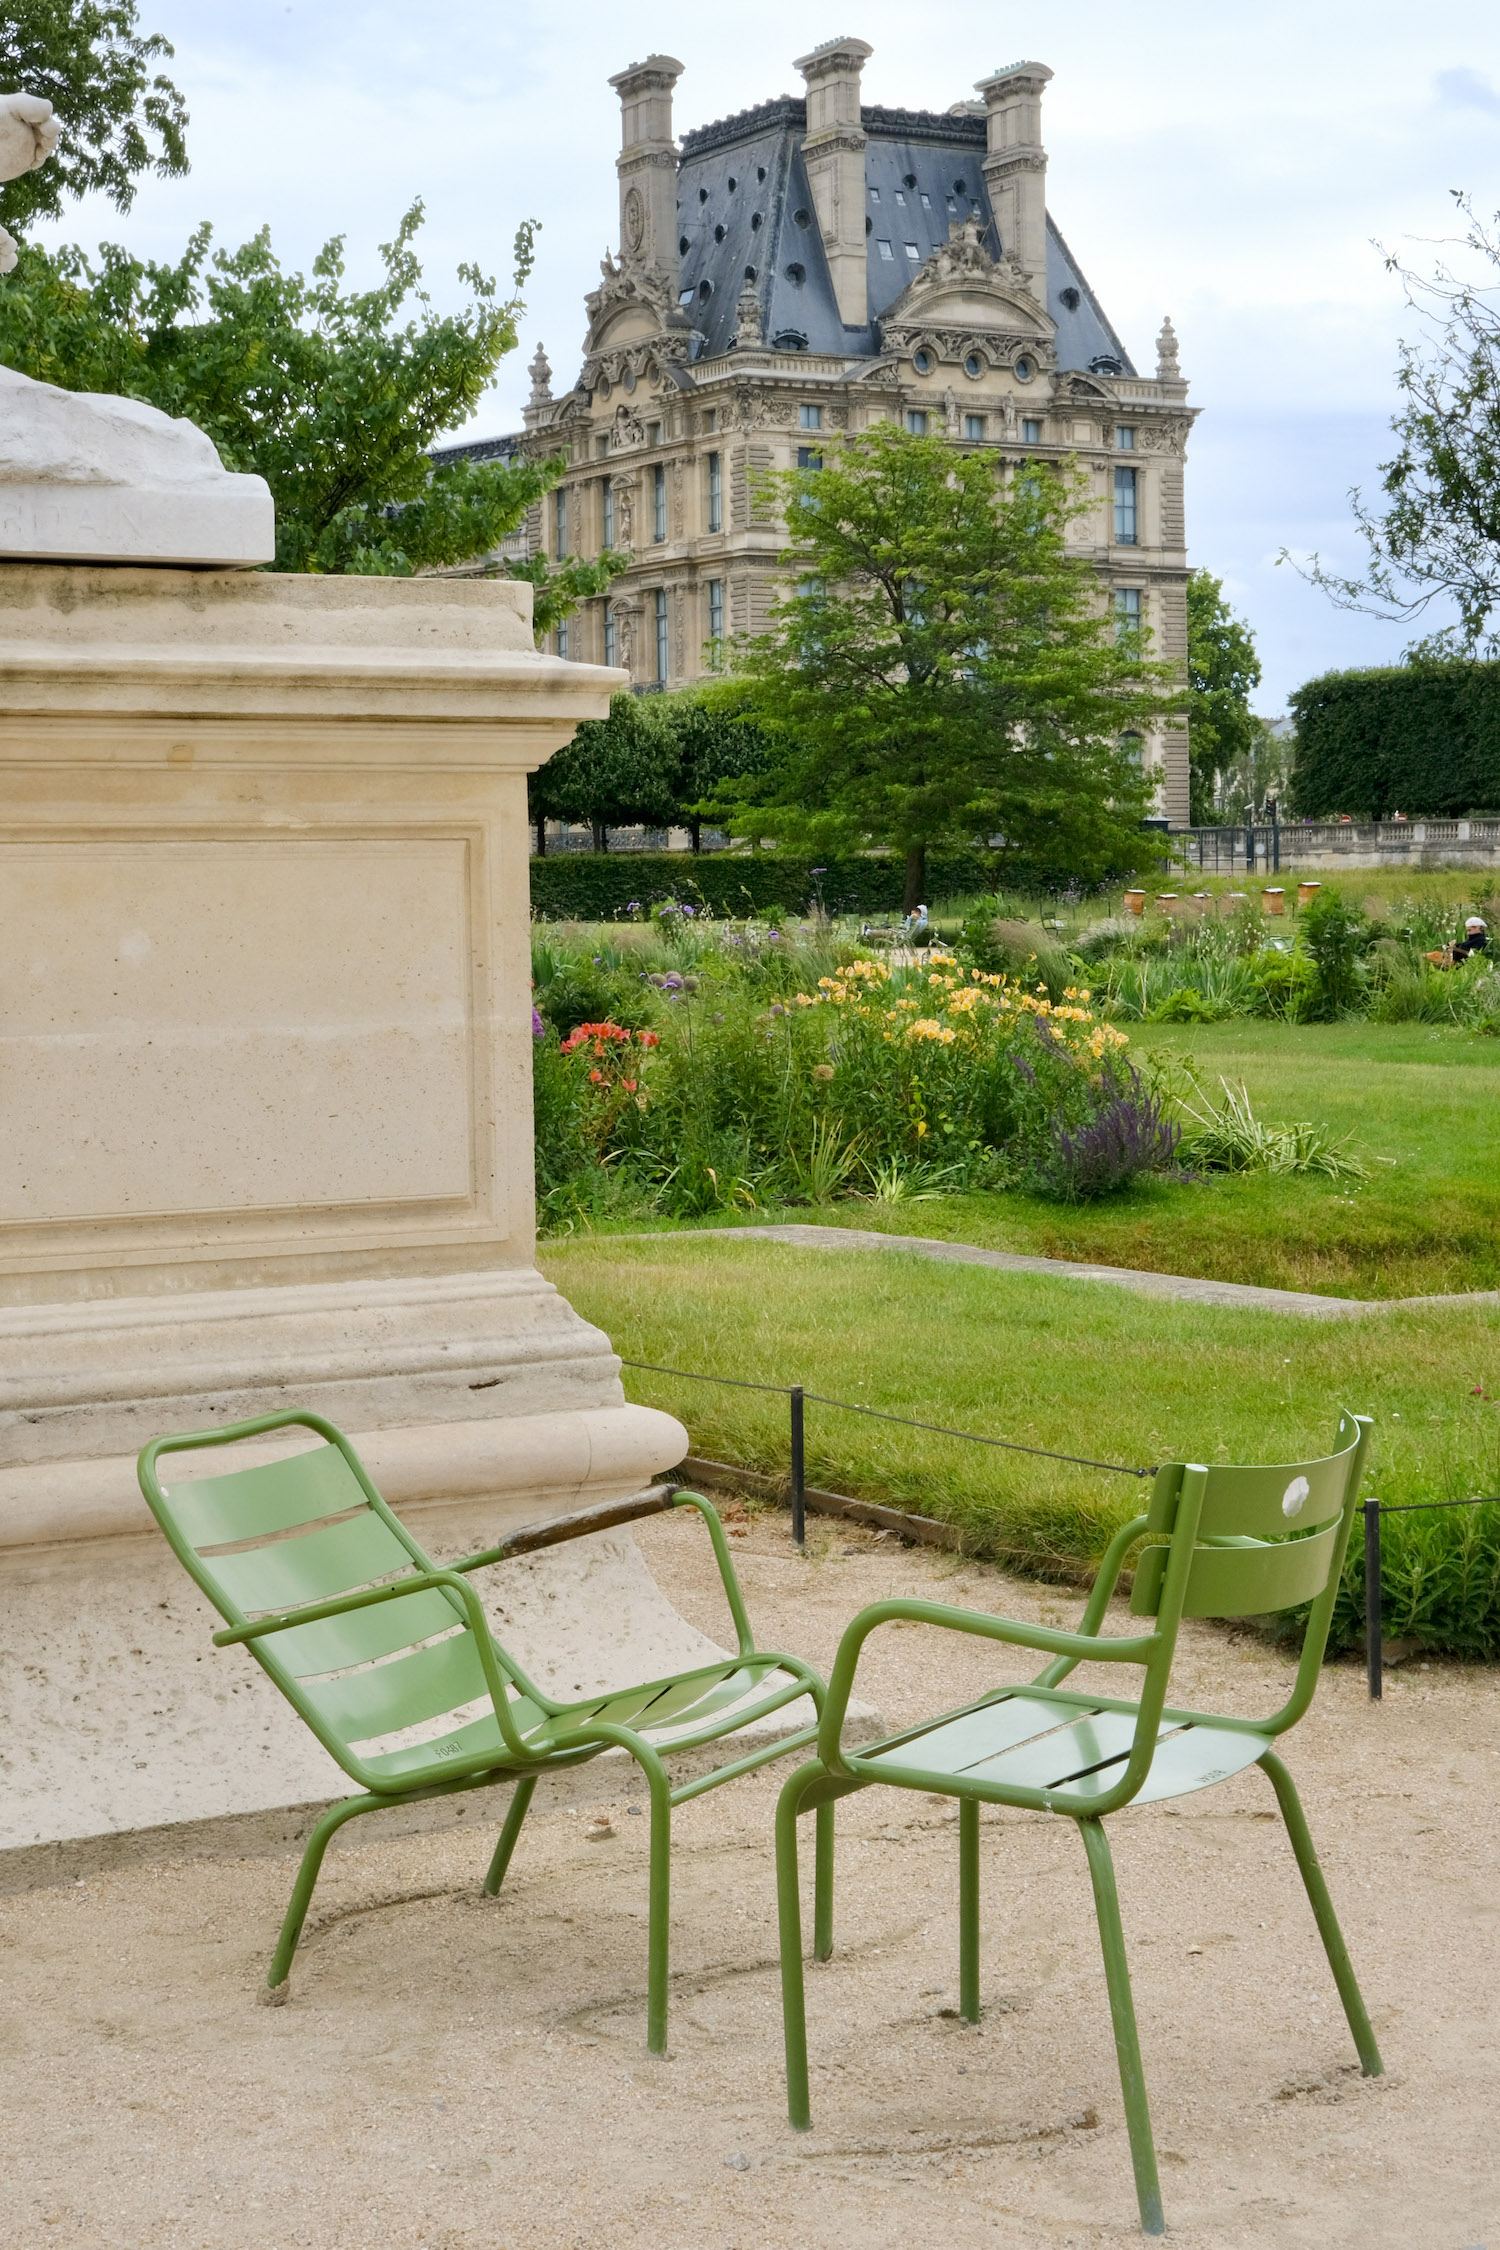 Green chairs in the Jardin des Tuileries